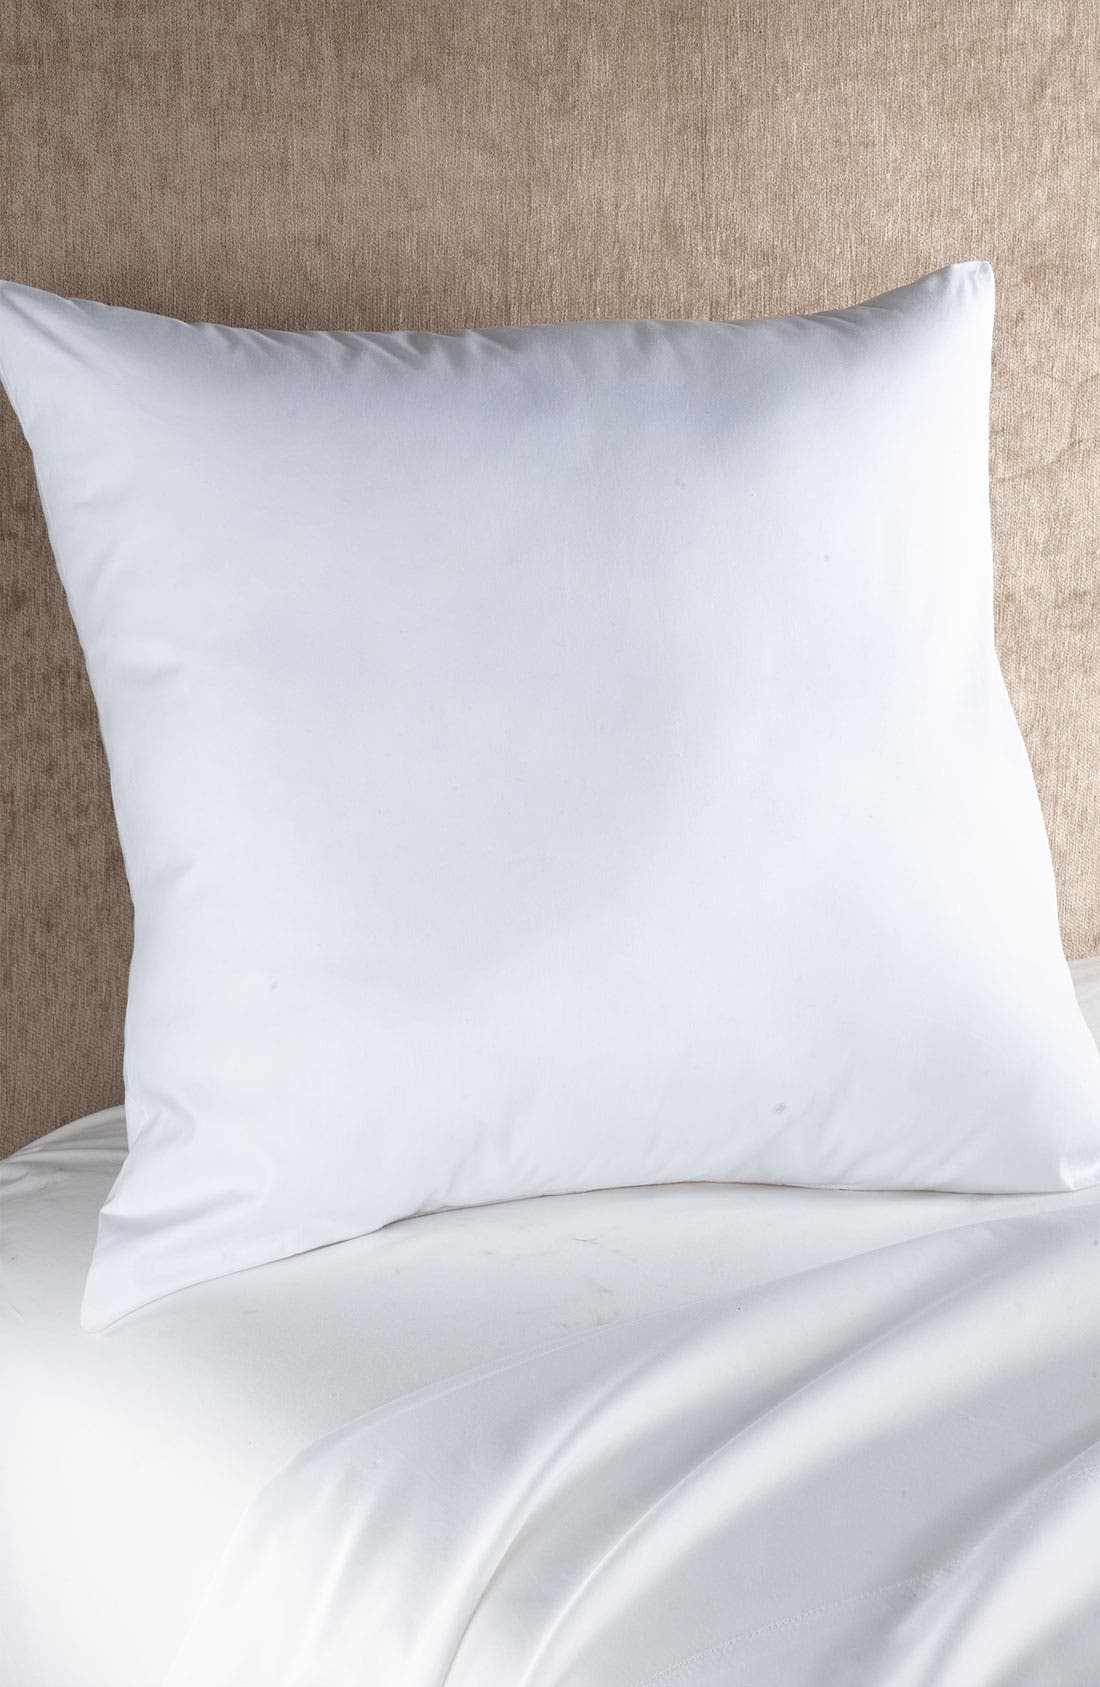 Nordstrom at Home Down Euro Pillow Insert